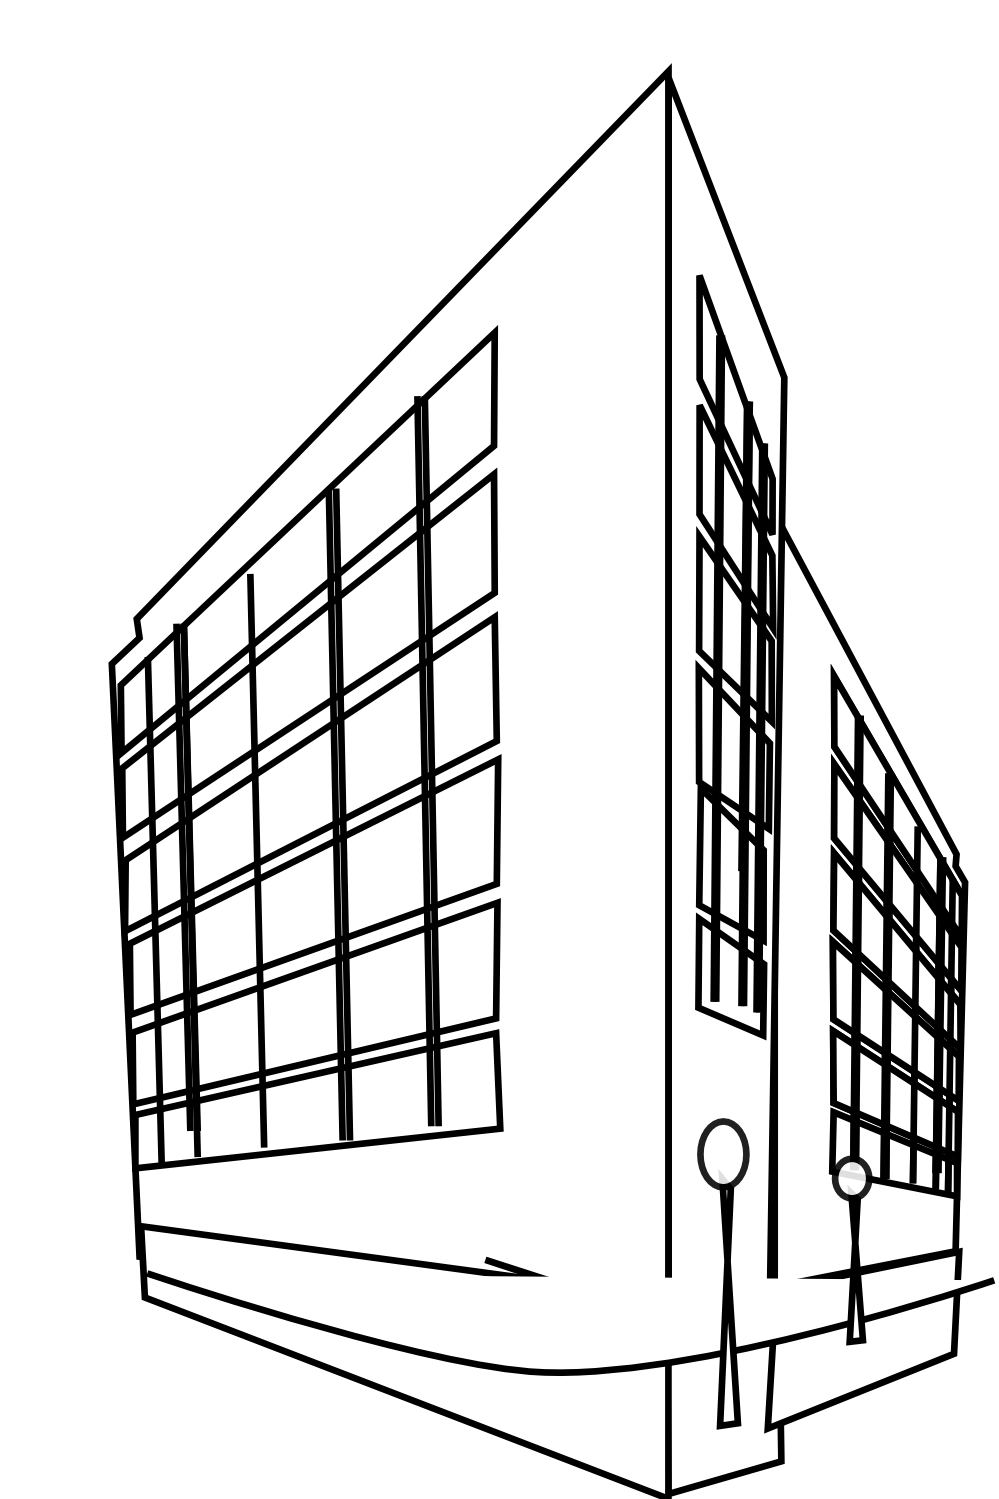 Office clipart commercial building Clip black deco art image